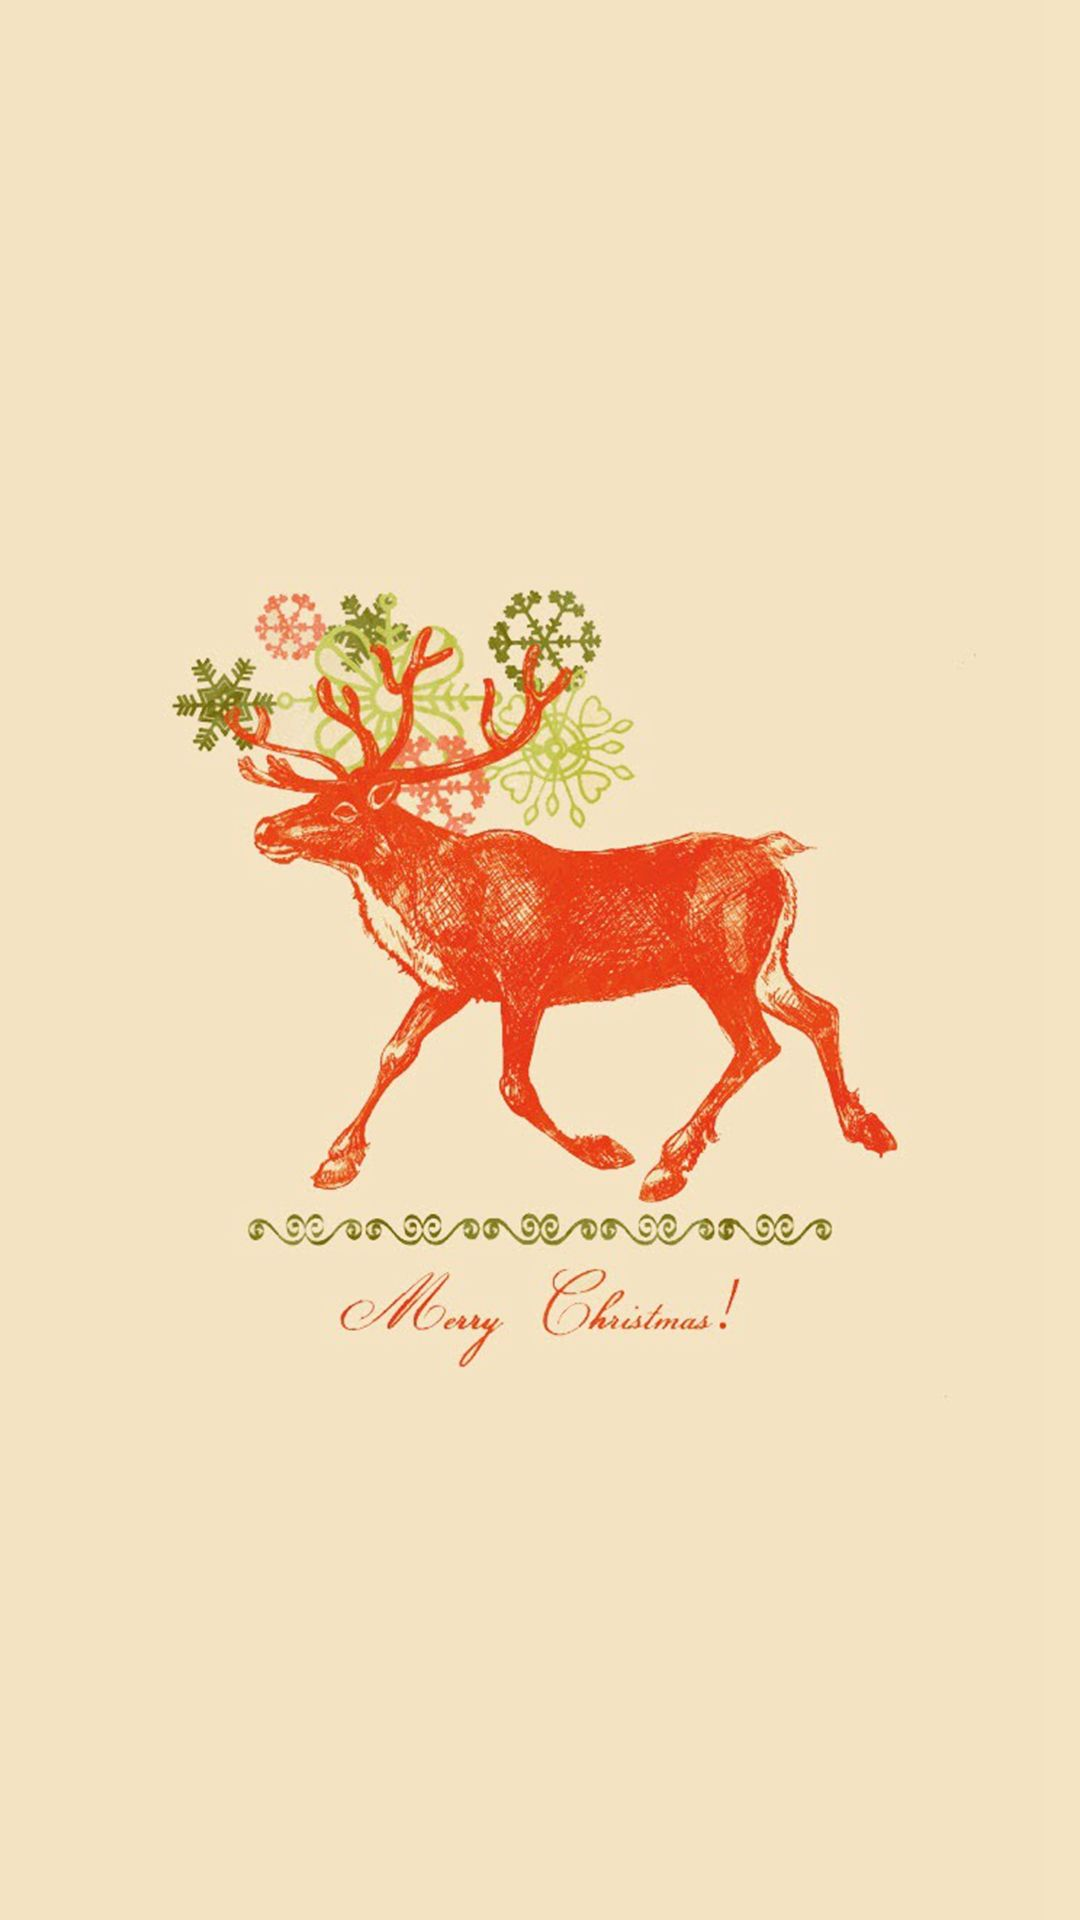 Best 5 Thanksgiving Wallpaper Hd Resolution For Your Android Or Iphone Wallpapers Christmas Phone Wallpaper Wallpaper Iphone Christmas Merry Christmas Vintage